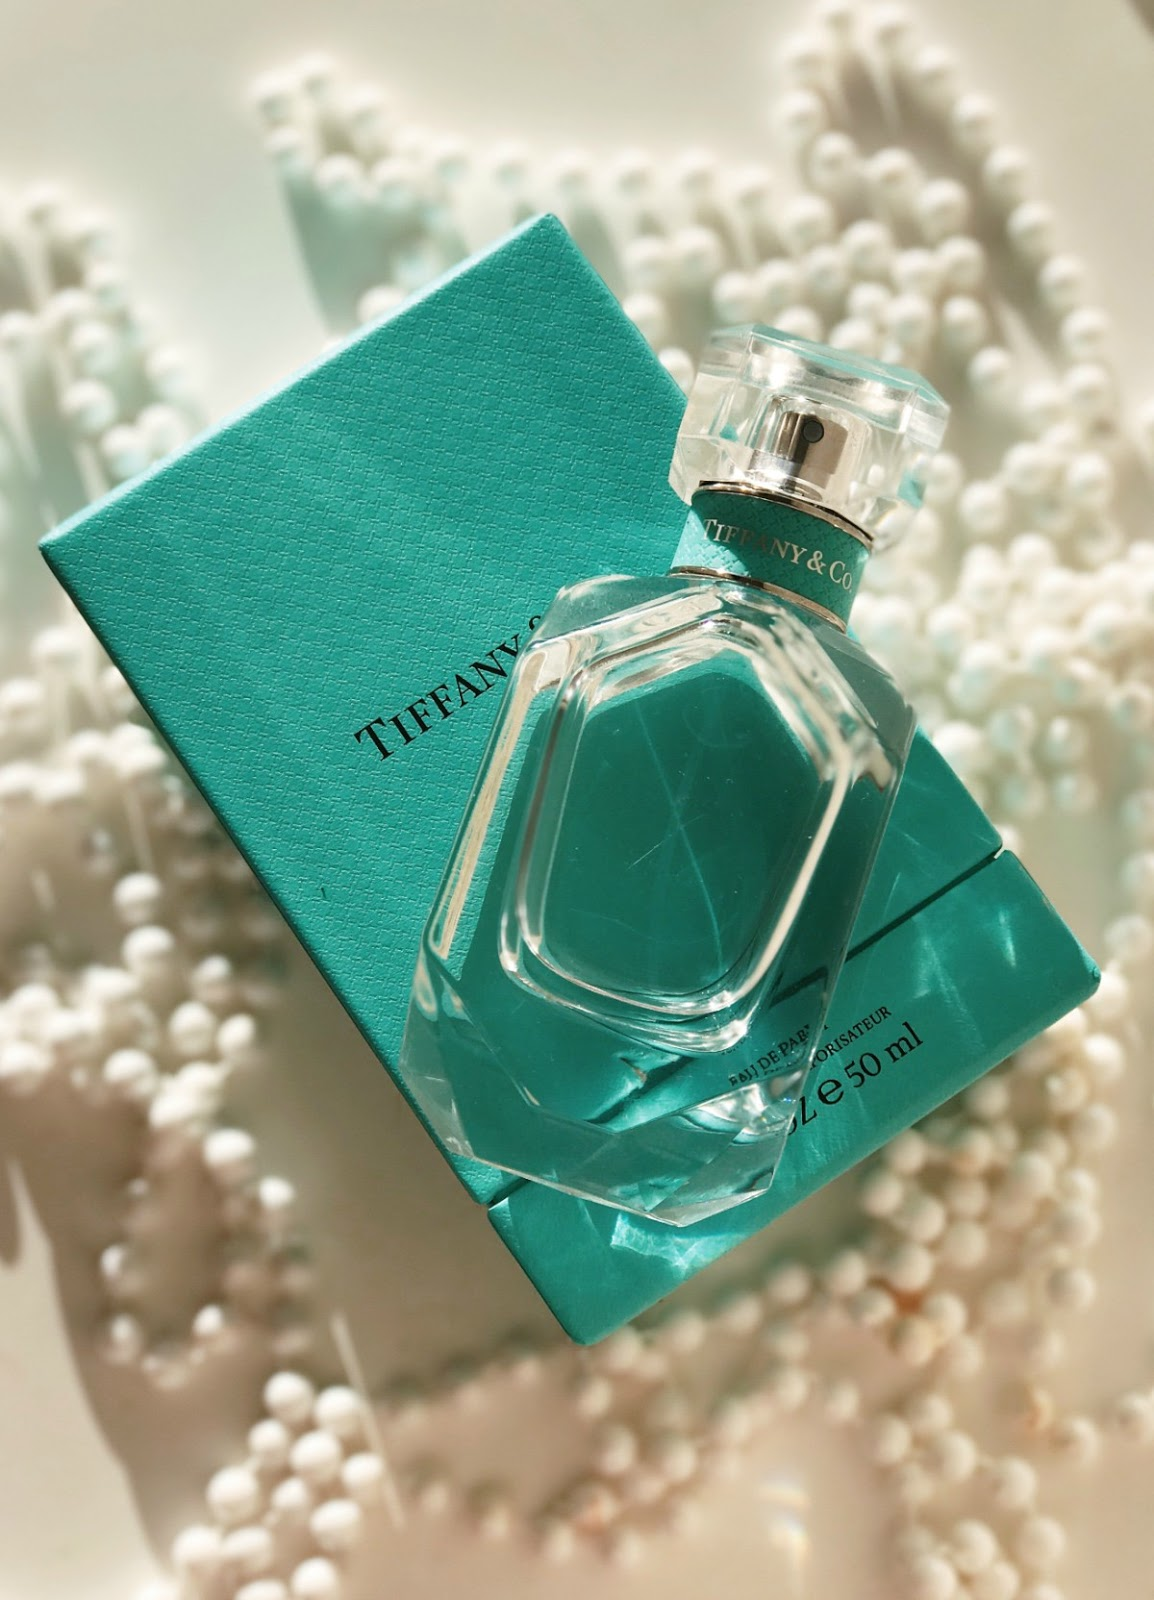 Tiffany & Co Eau de Parfume Review